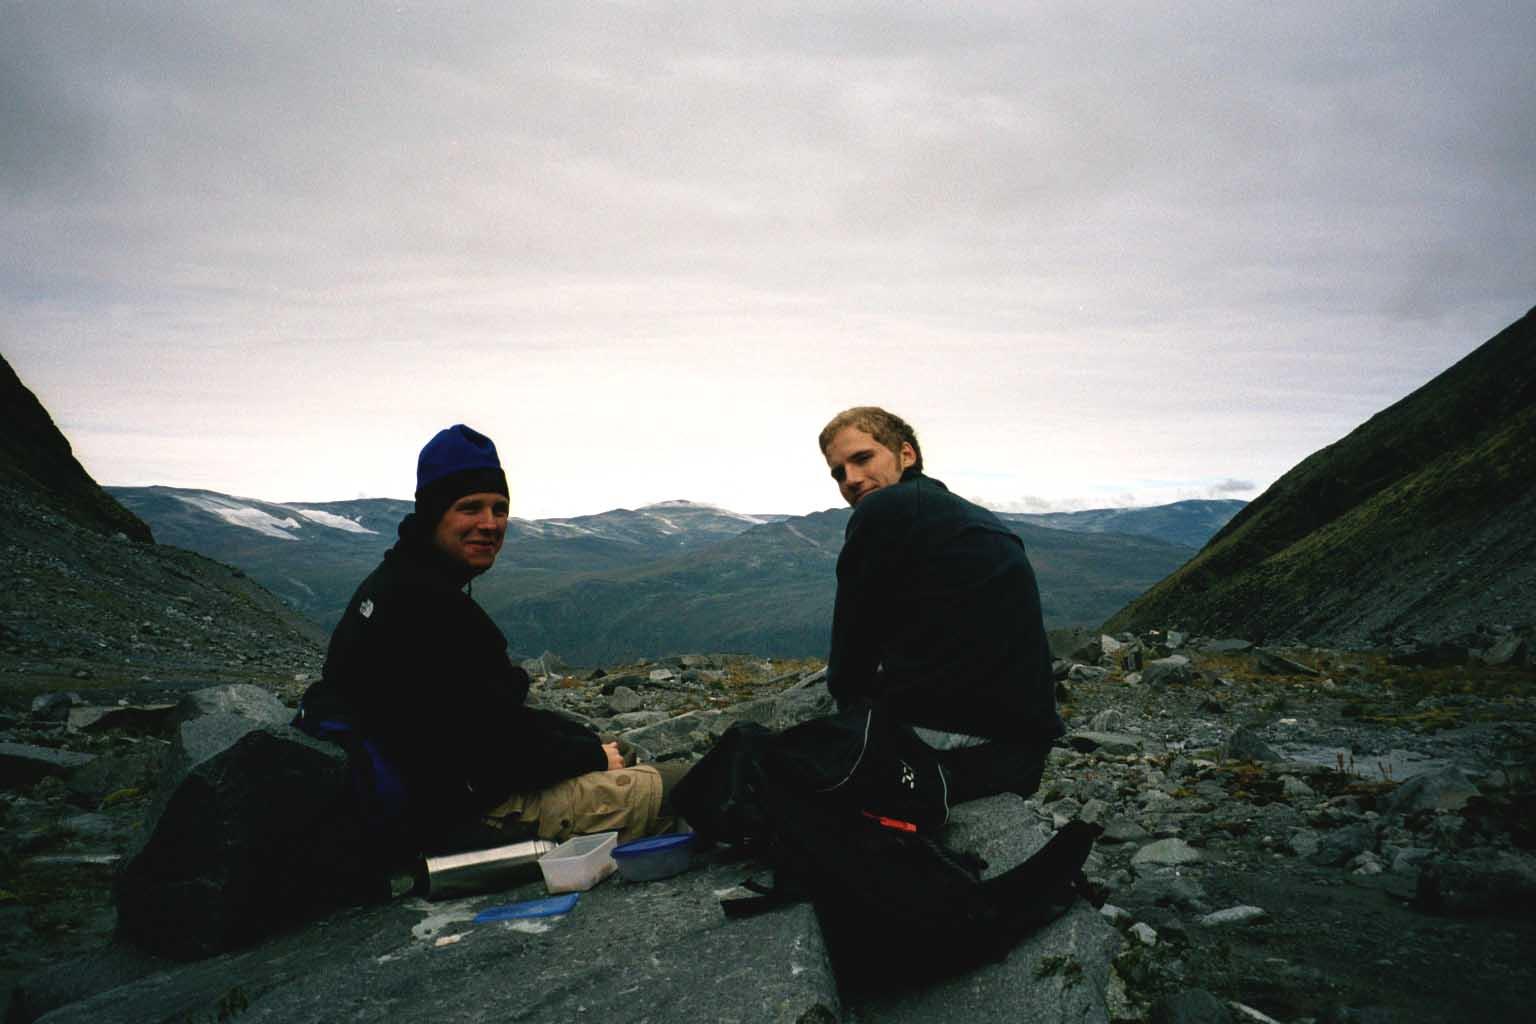 Stefan and Mickael at the glacier port, Norway 2002